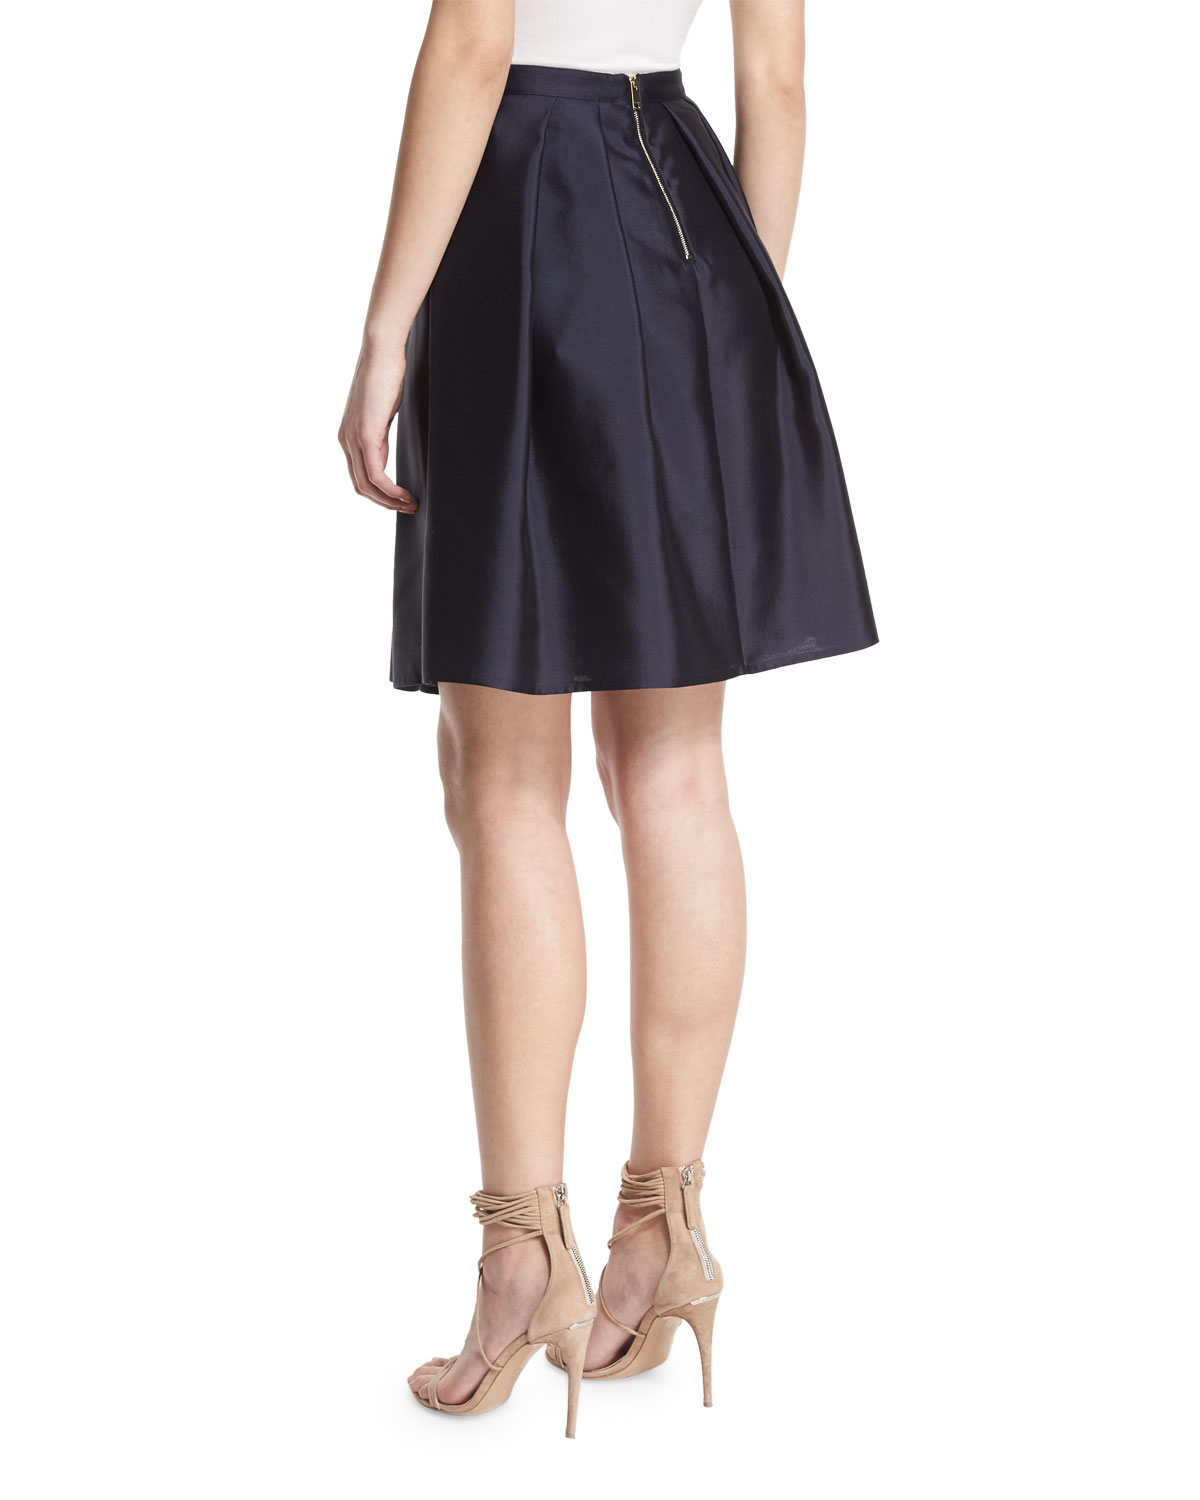 Shop Full Pleated Skirt. Find your perfect size online at the best price at New York & Company.